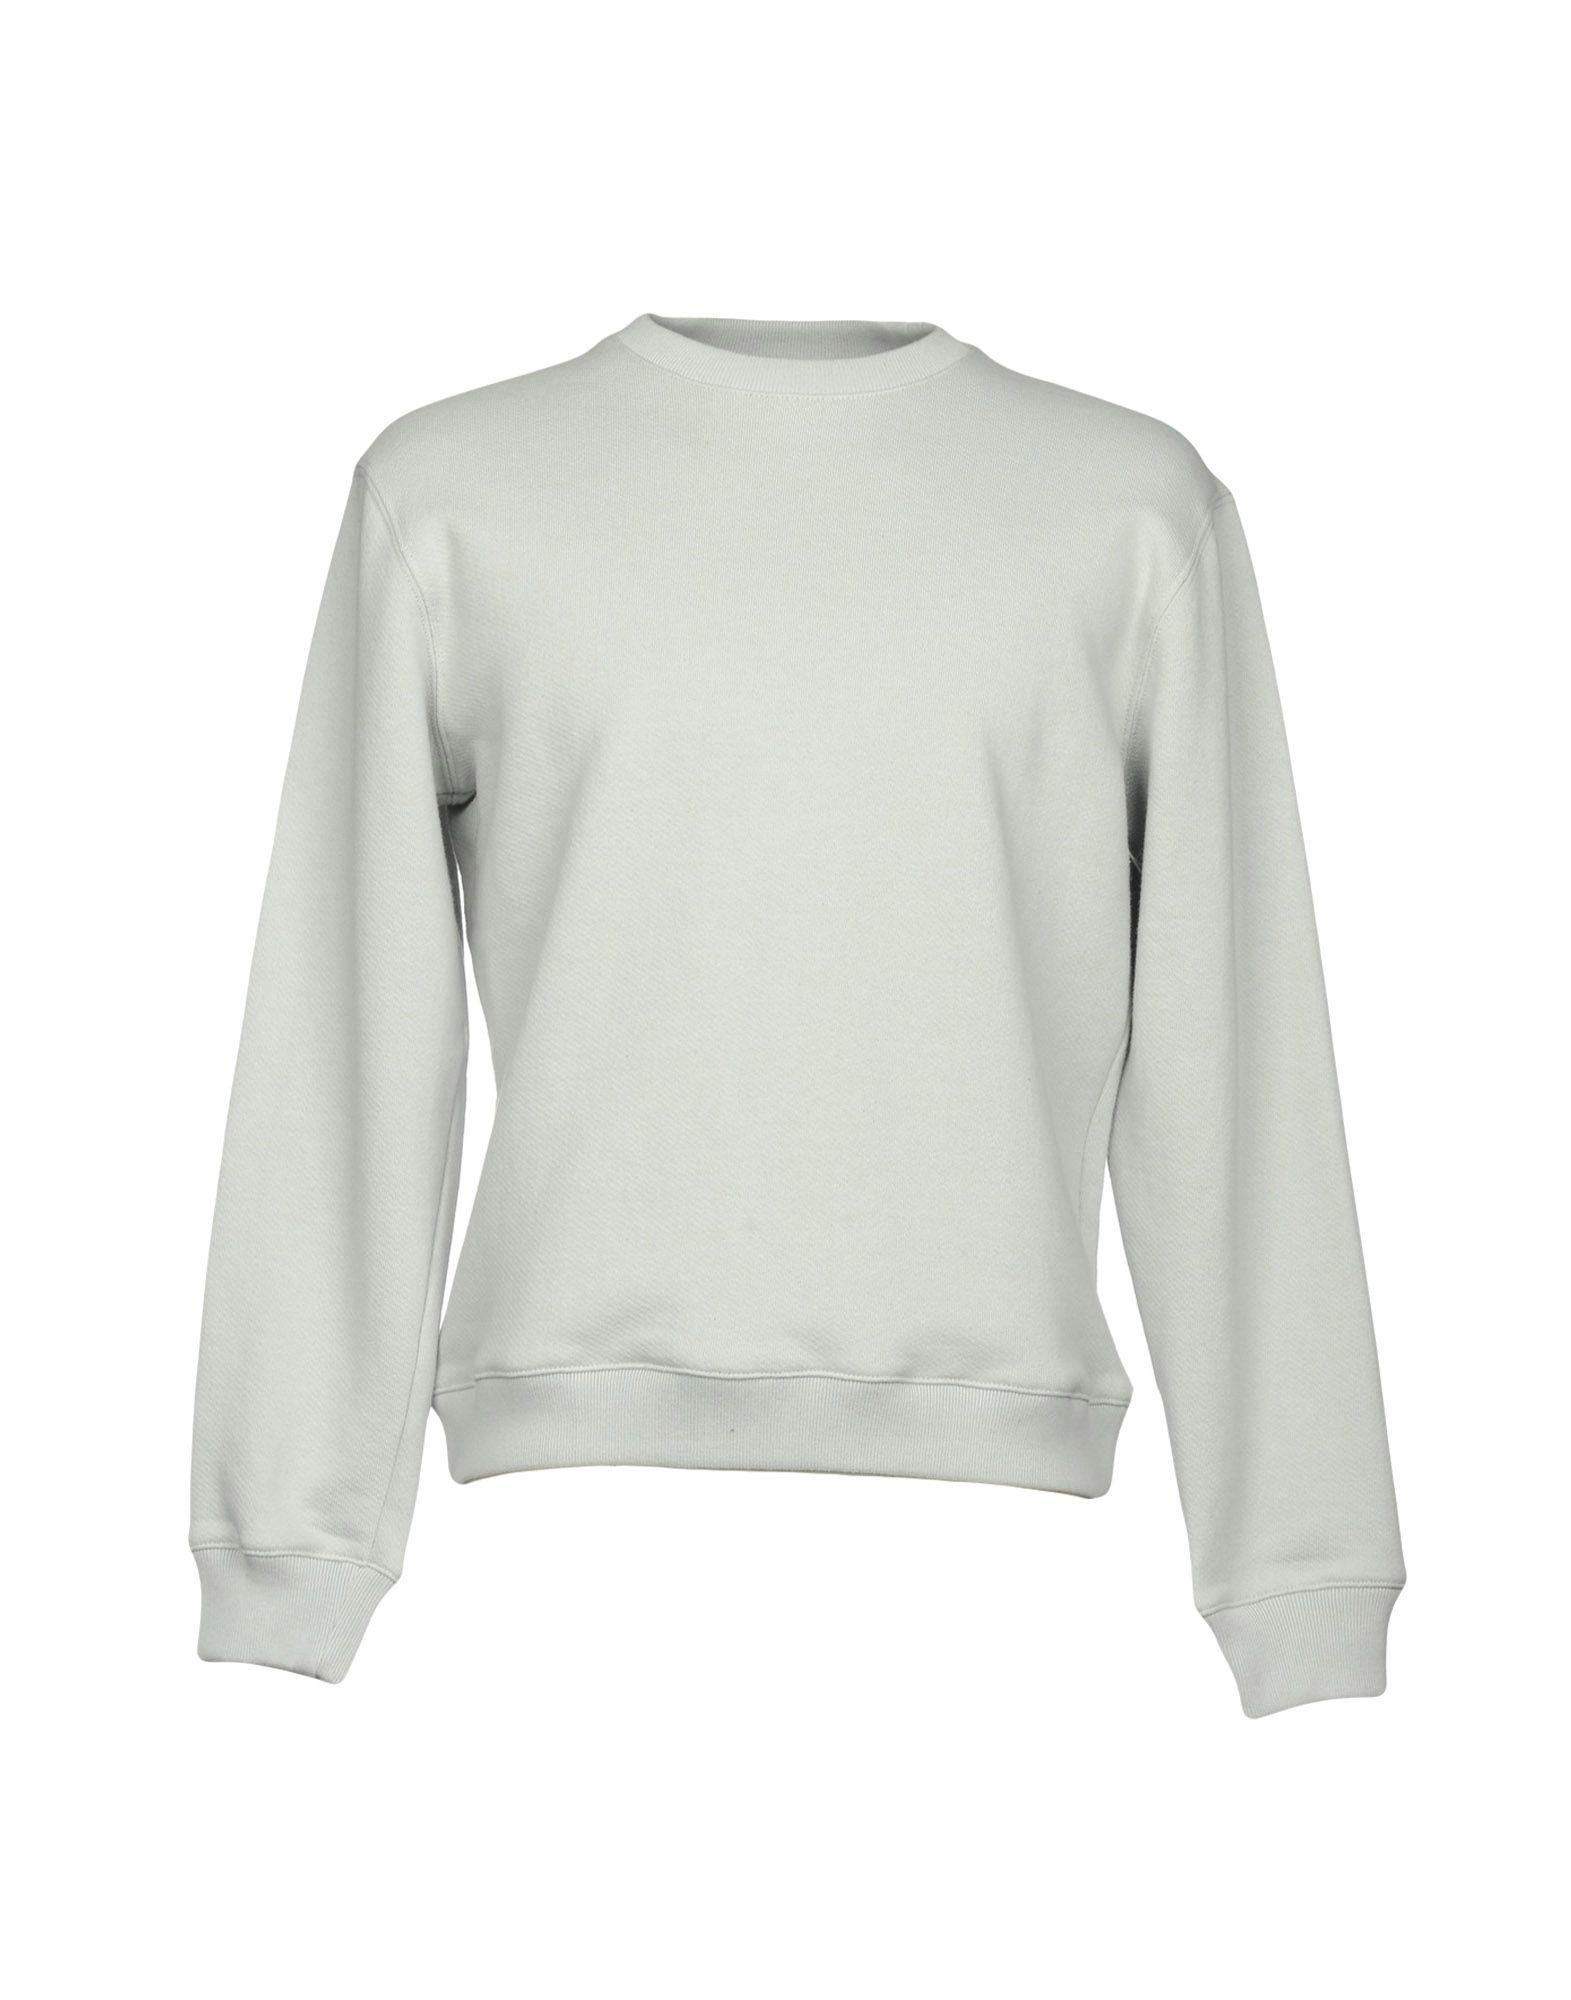 Fanmail Sweatshirt In Light Grey